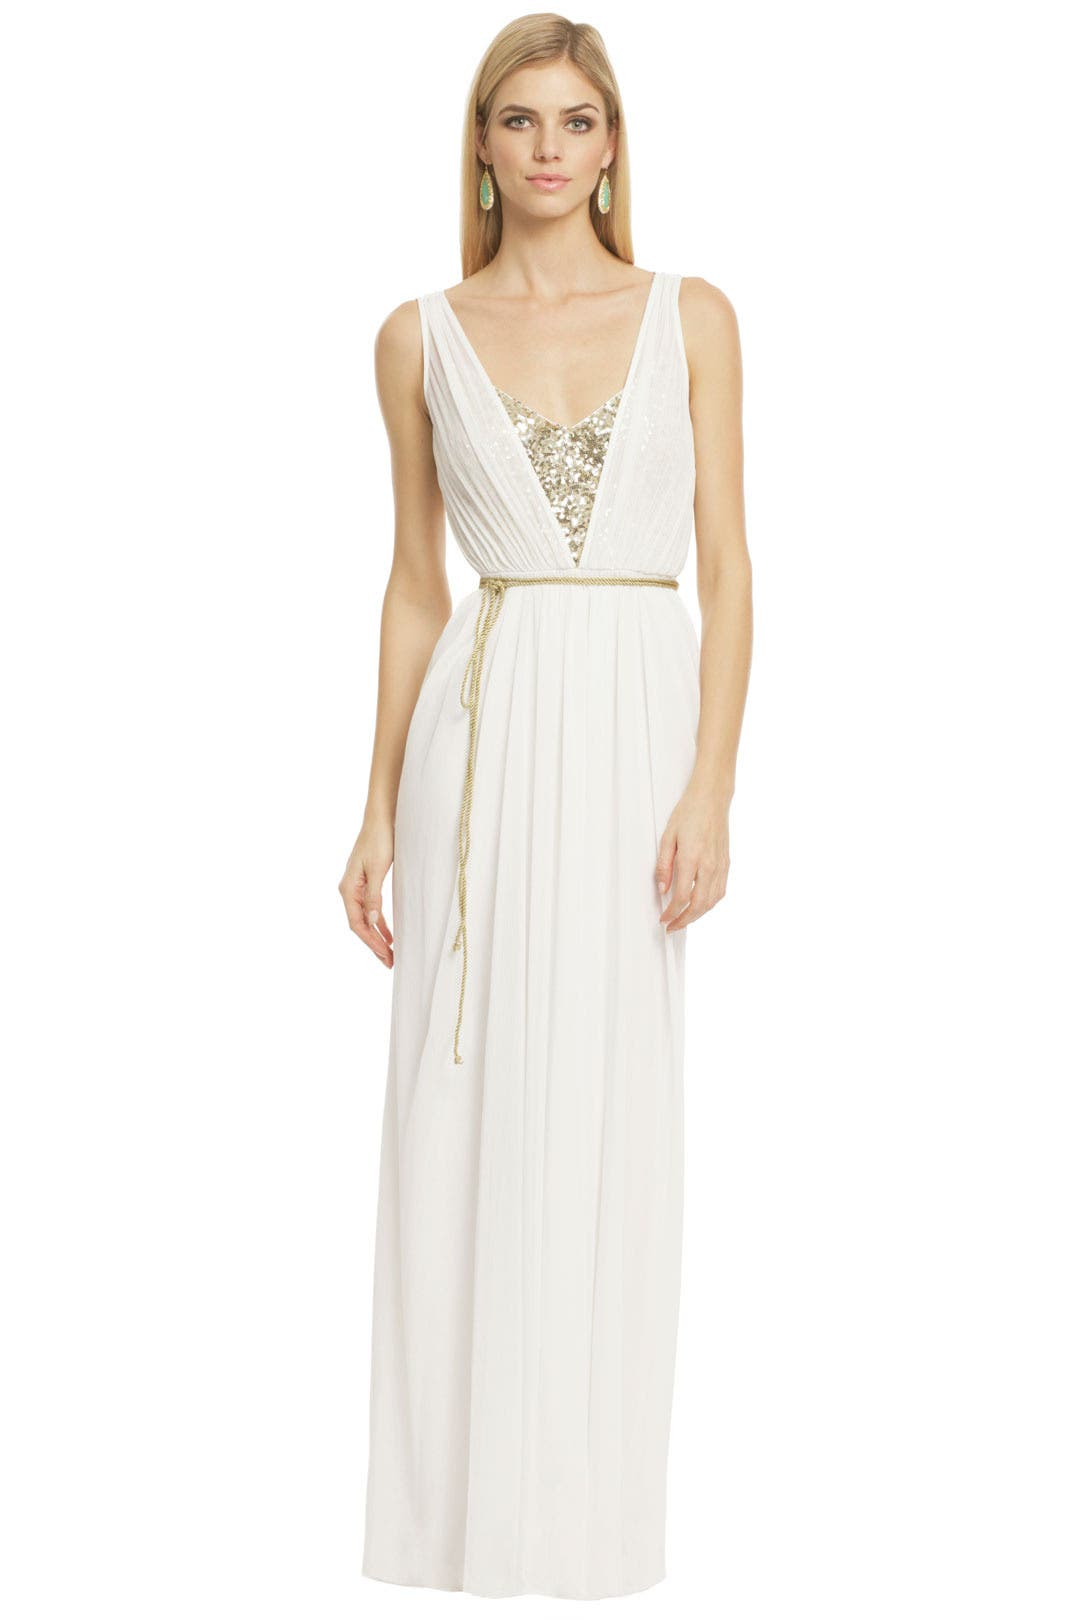 Rhodes Harbor Gown by Mark & James by Badgley Mischka